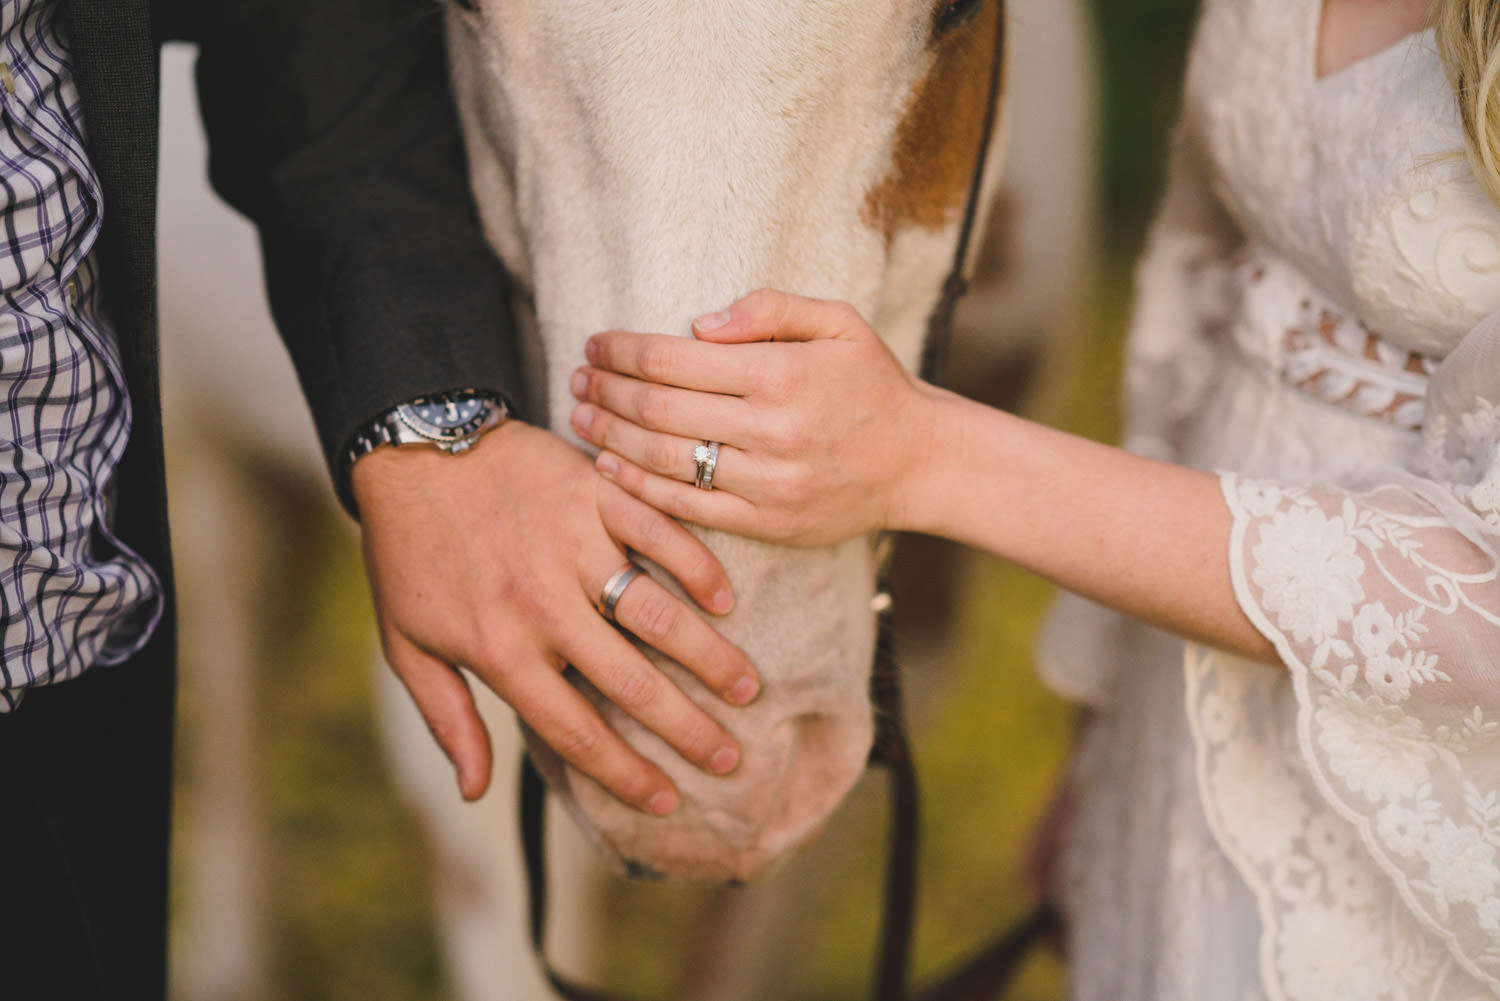 Equestrian bridal session couple hands on horse muzzle photo